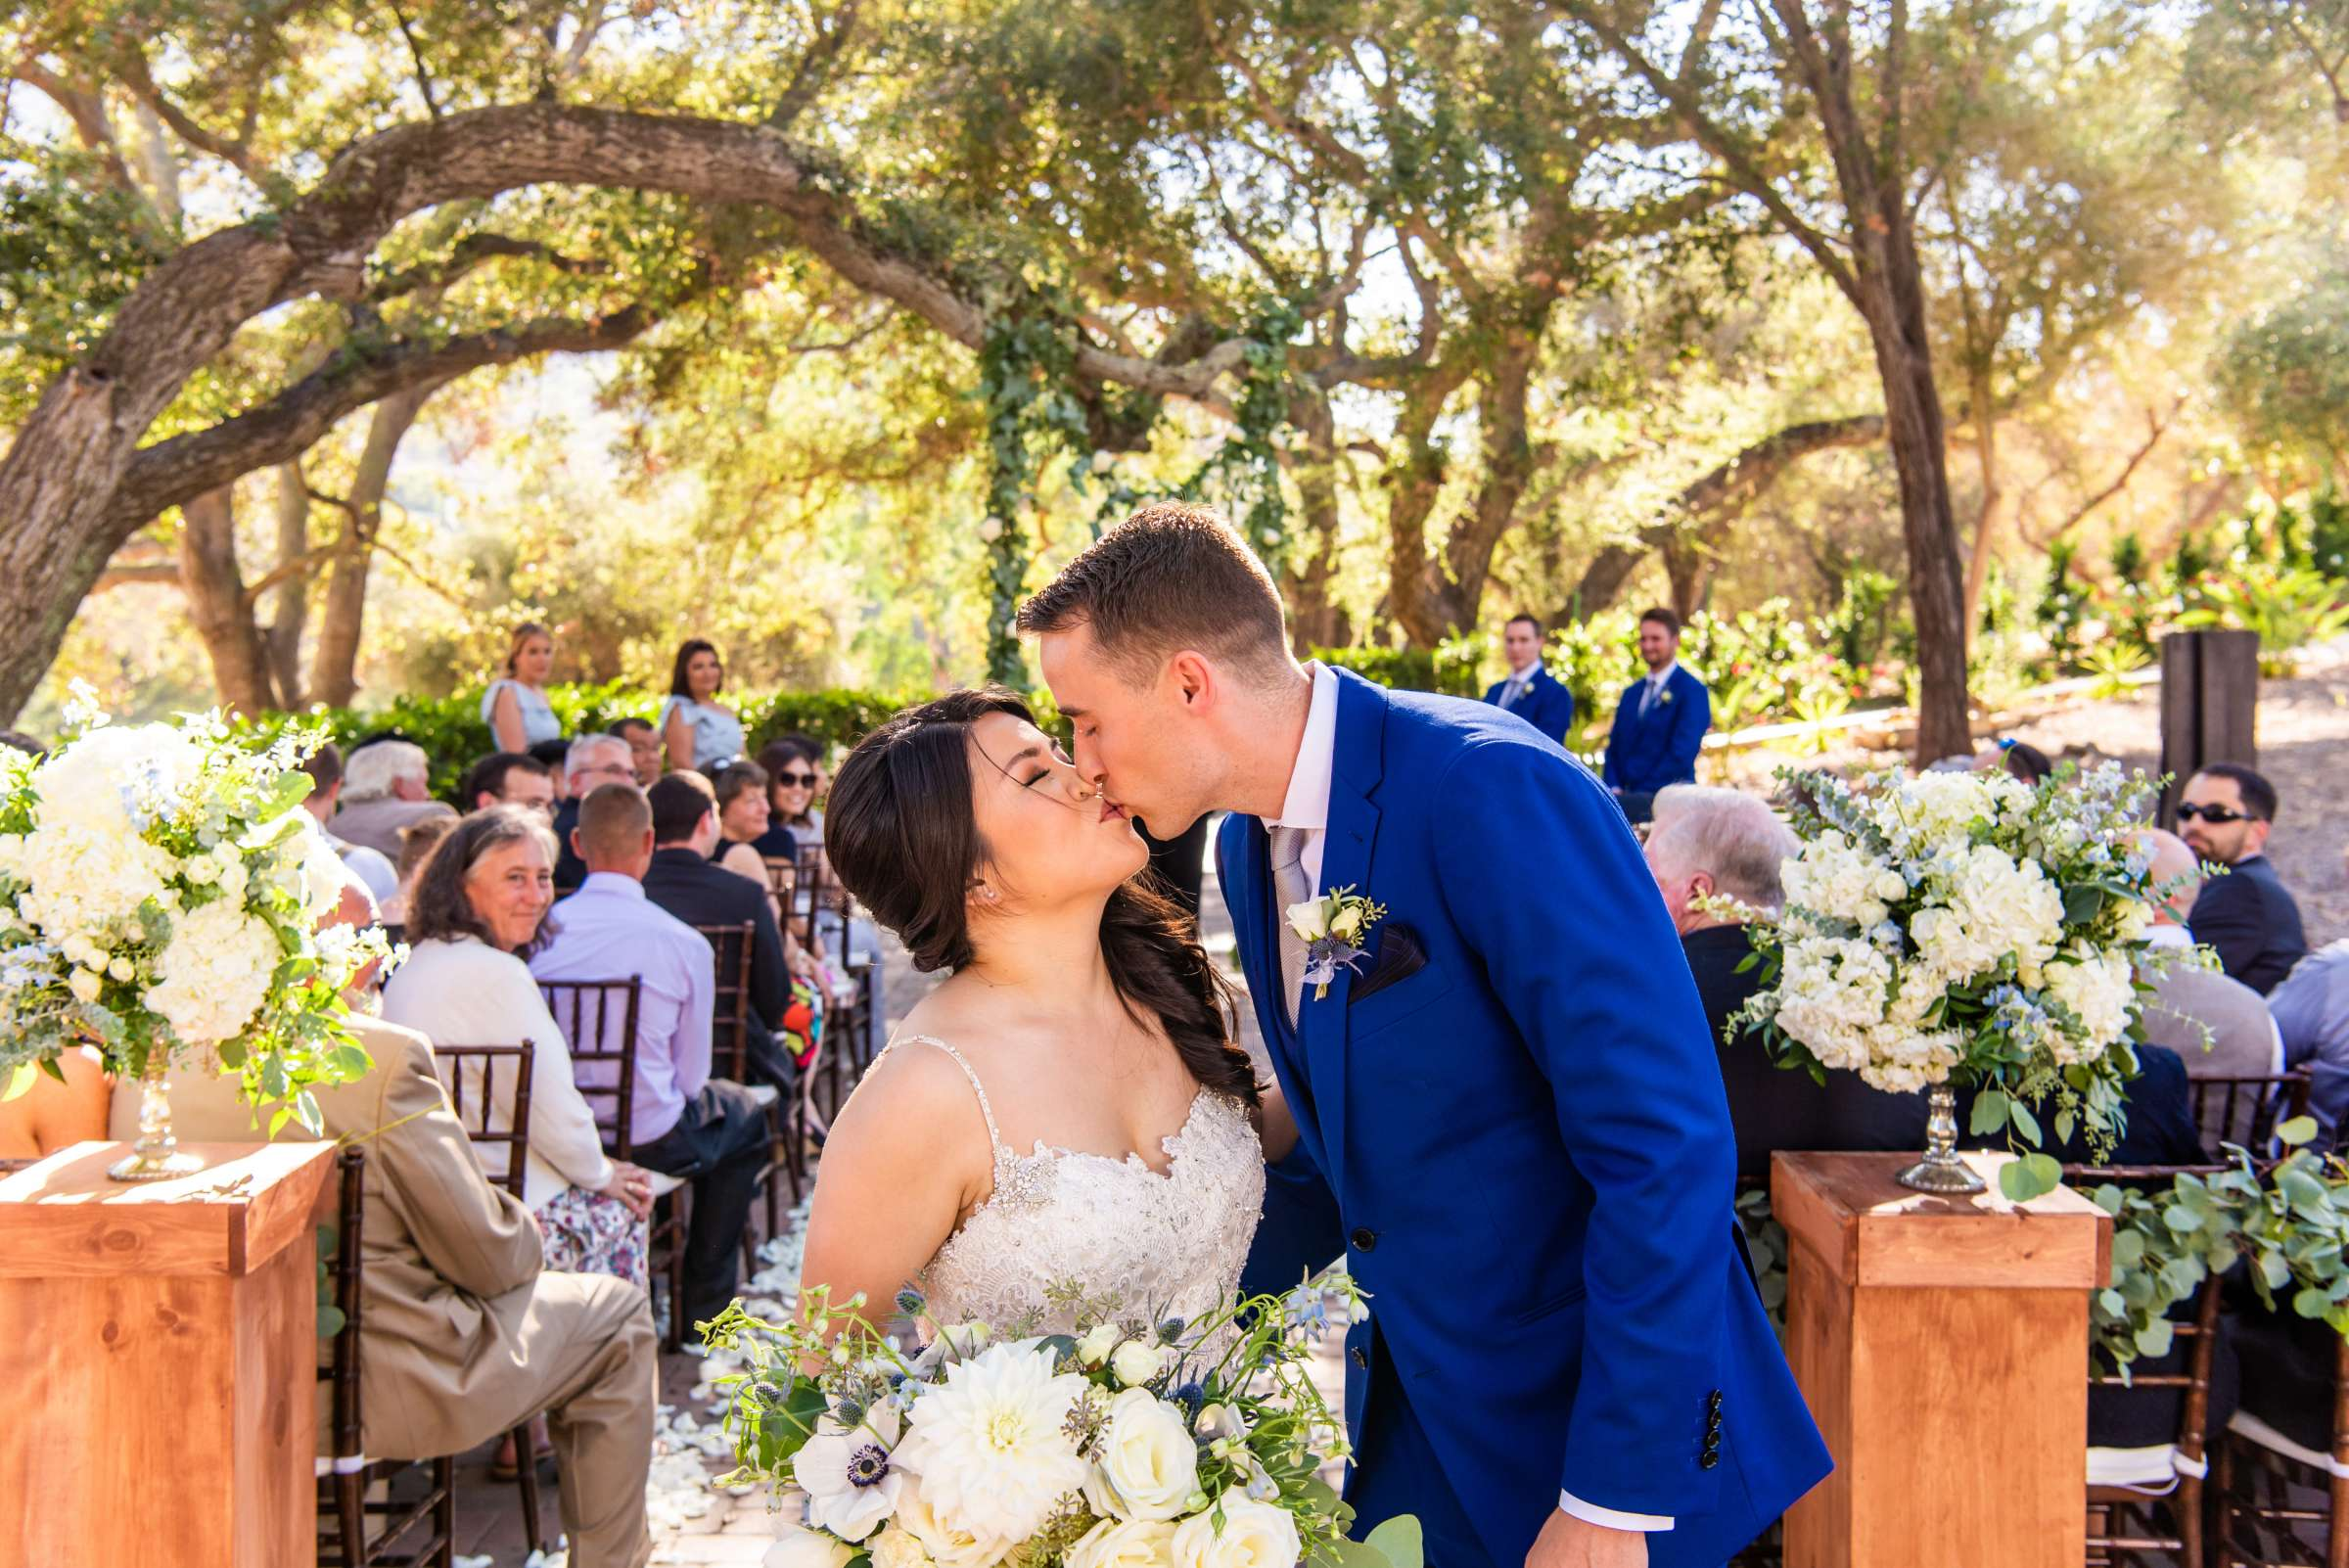 Mt Woodson Castle Wedding coordinated by I Do Weddings, Aya and Jared Wedding Photo #486950 by True Photography